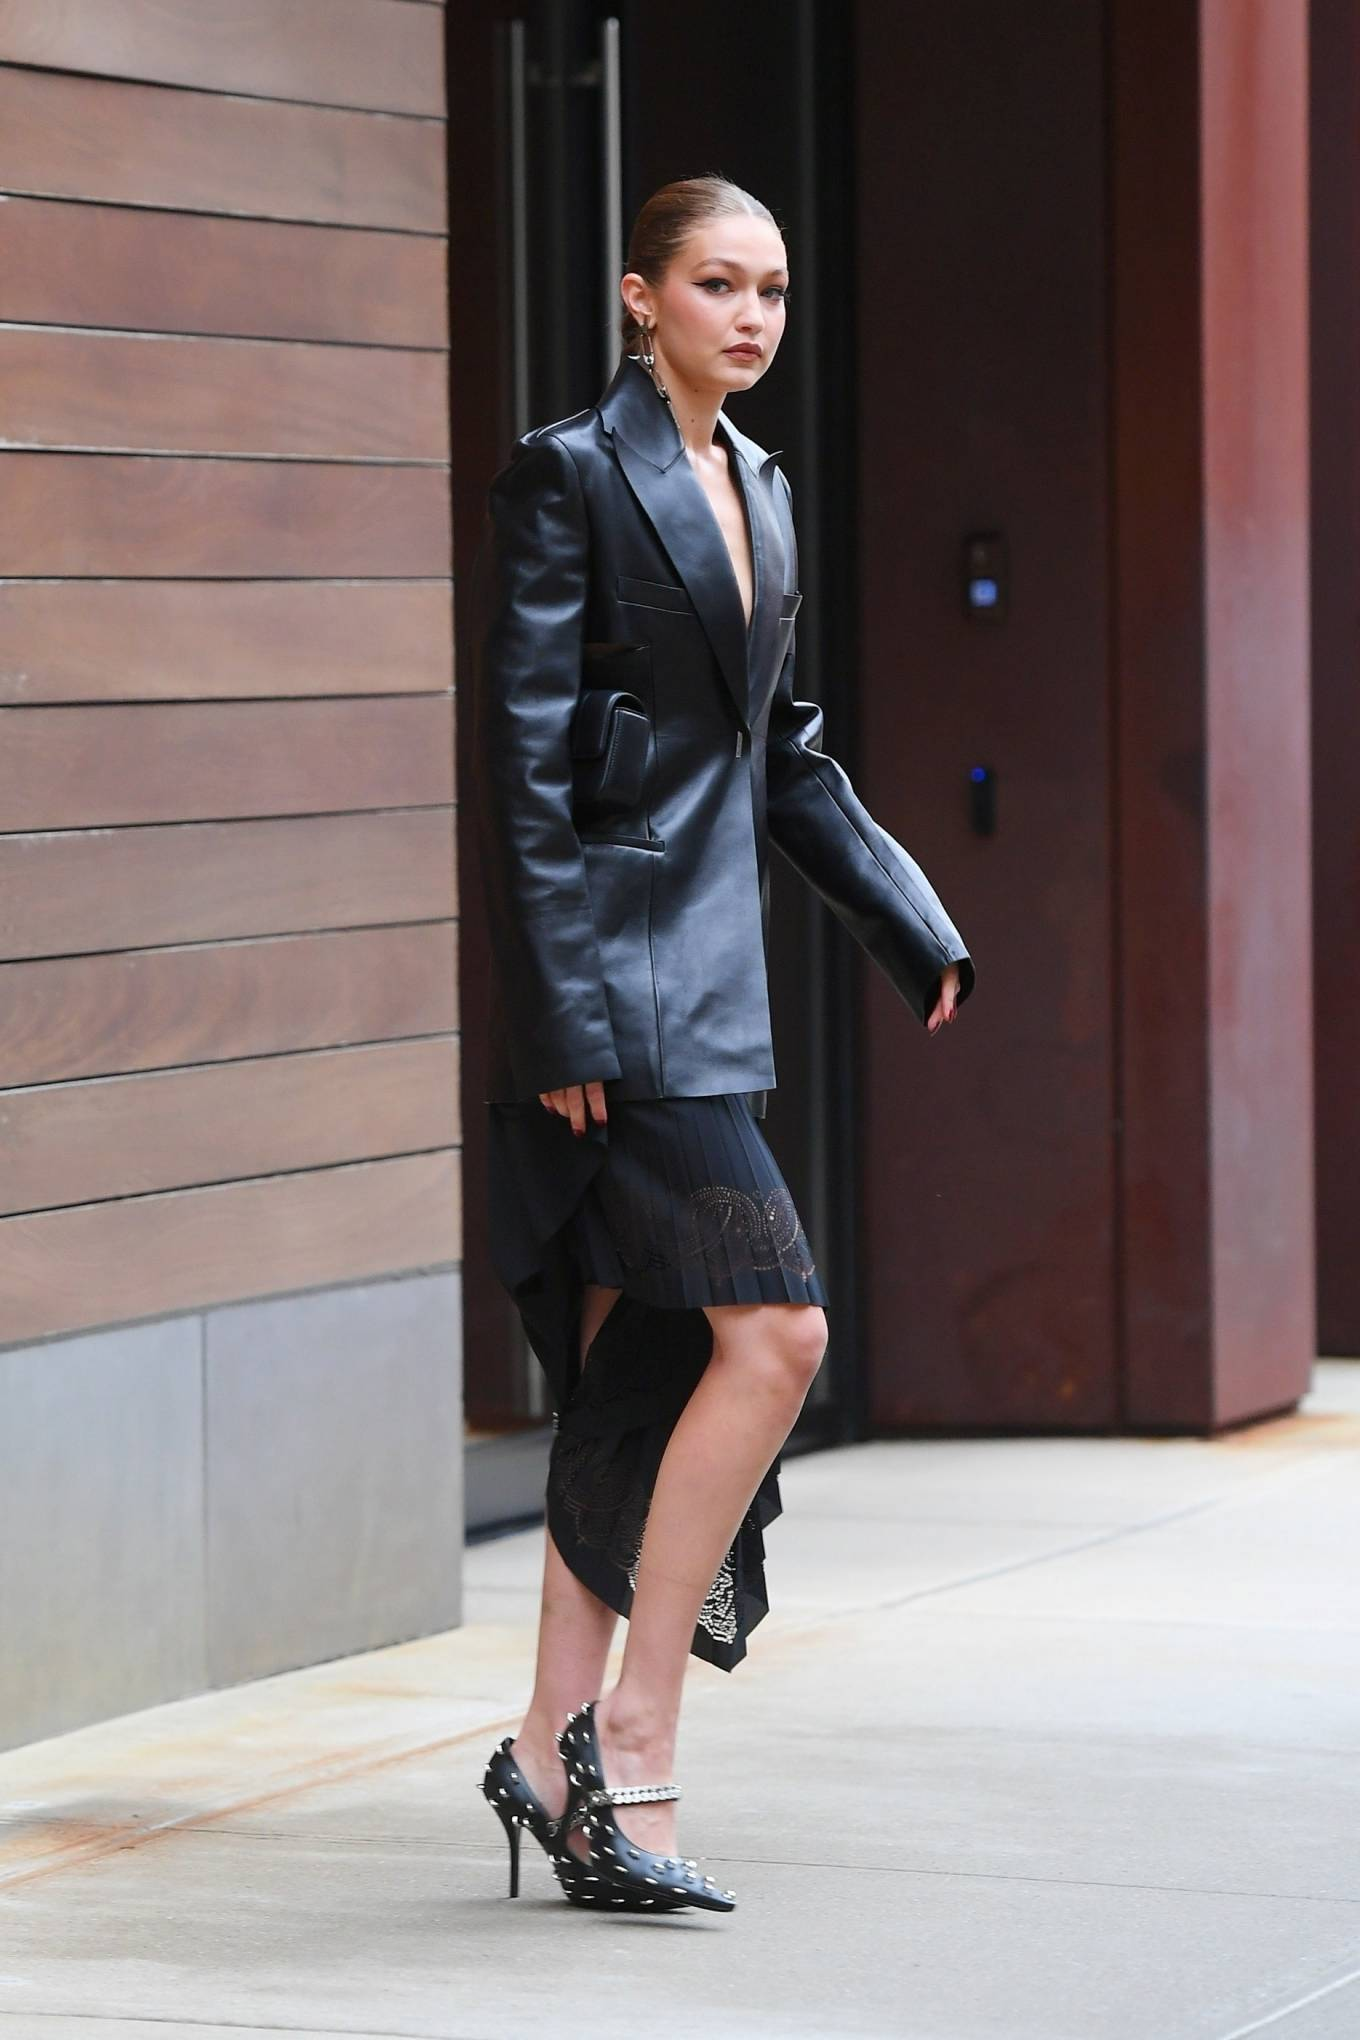 Gigi Hadid donning chain detailing black Givenchy slip on pumps with stiletto heels and Studded rings all over